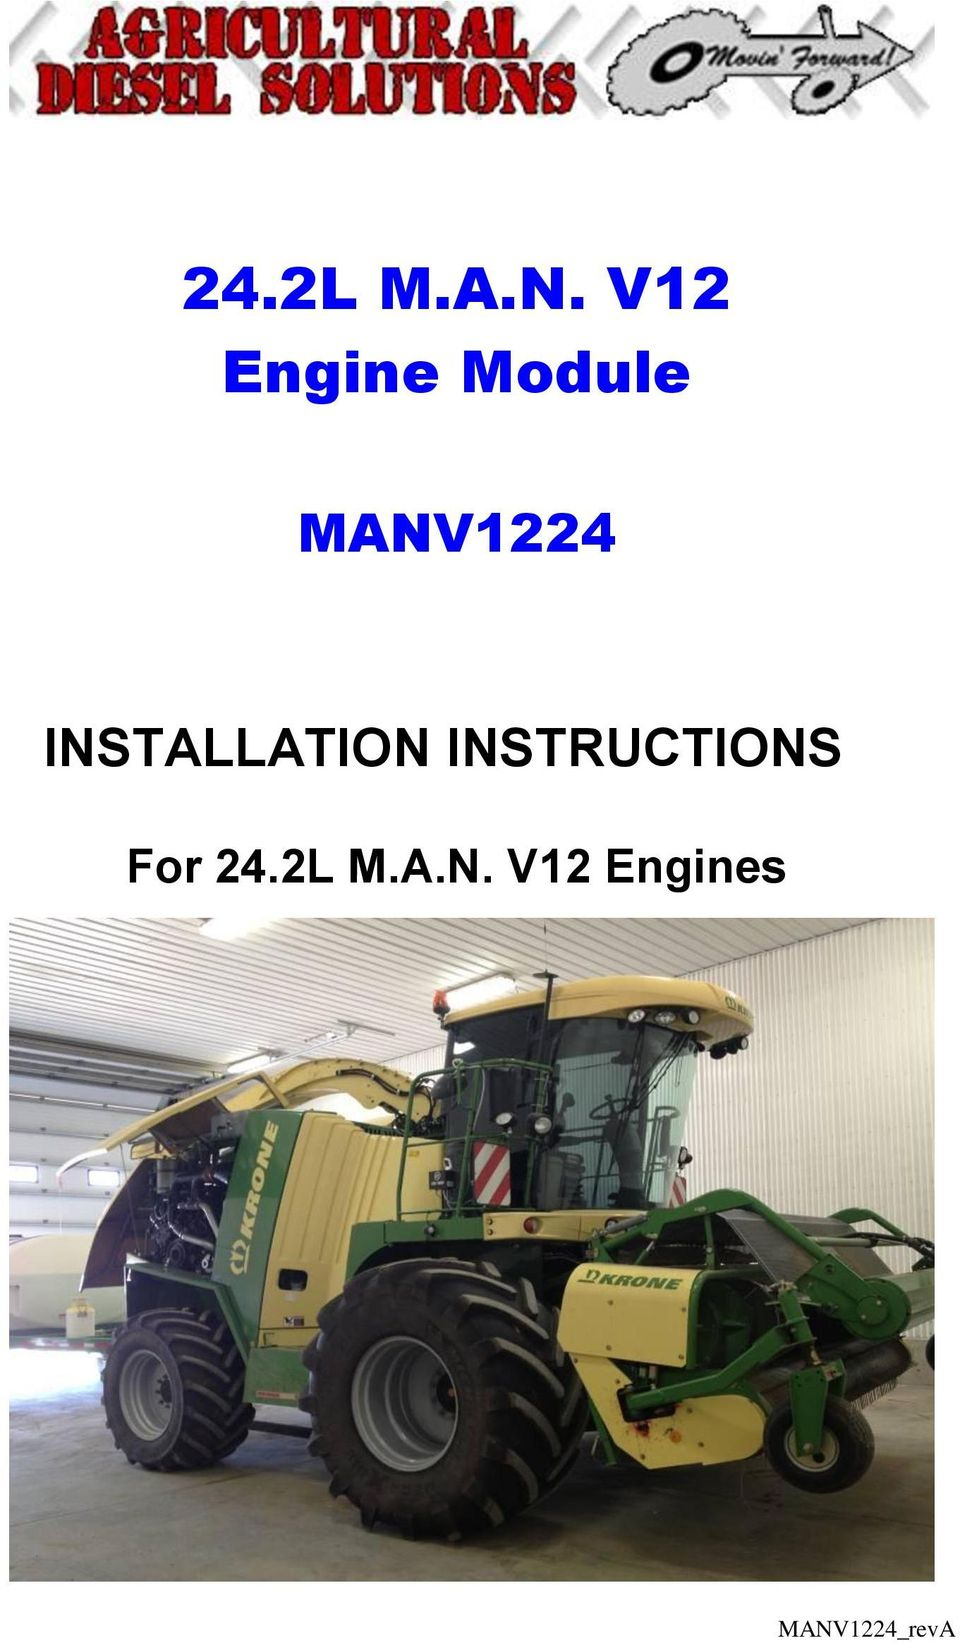 MANV1224 INSTALLATION